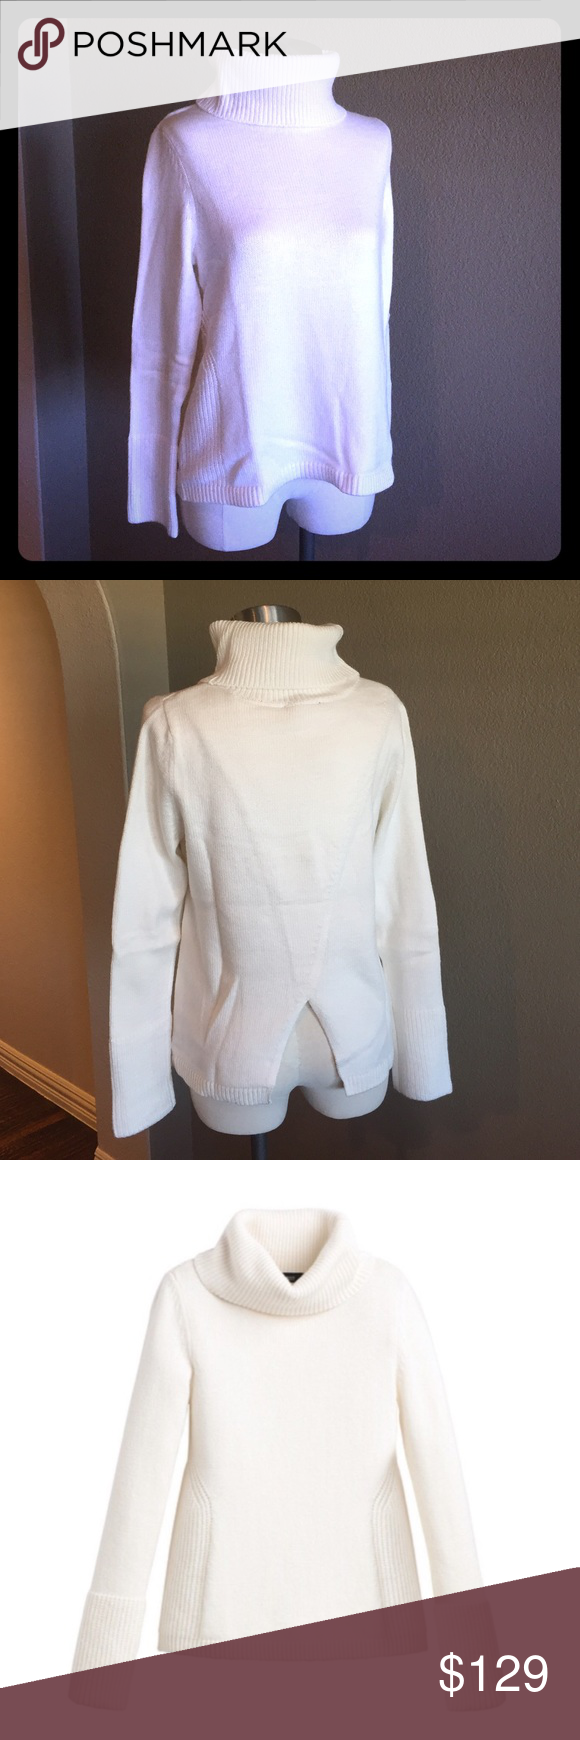 """White House Black Market Split-Back Turtleneck Cashmere blend long sleeve turtleneck has a relaxed fit with split-back detail. Look fabulous and cozy at the same time with winter white jeans and boots. Your fall and winter go-to look! Rayon/nylon/cotton/cashmere blend. Machine wash, cold.   Approximate Measurements (measured flat and unstretched):  Bust- 18"""" armpit to armpit Hemline- 20"""" (measured flat) Shoulder width- 13.5"""" Length from shoulder to hem - 22"""" Sleeve length- 23"""" White House…"""